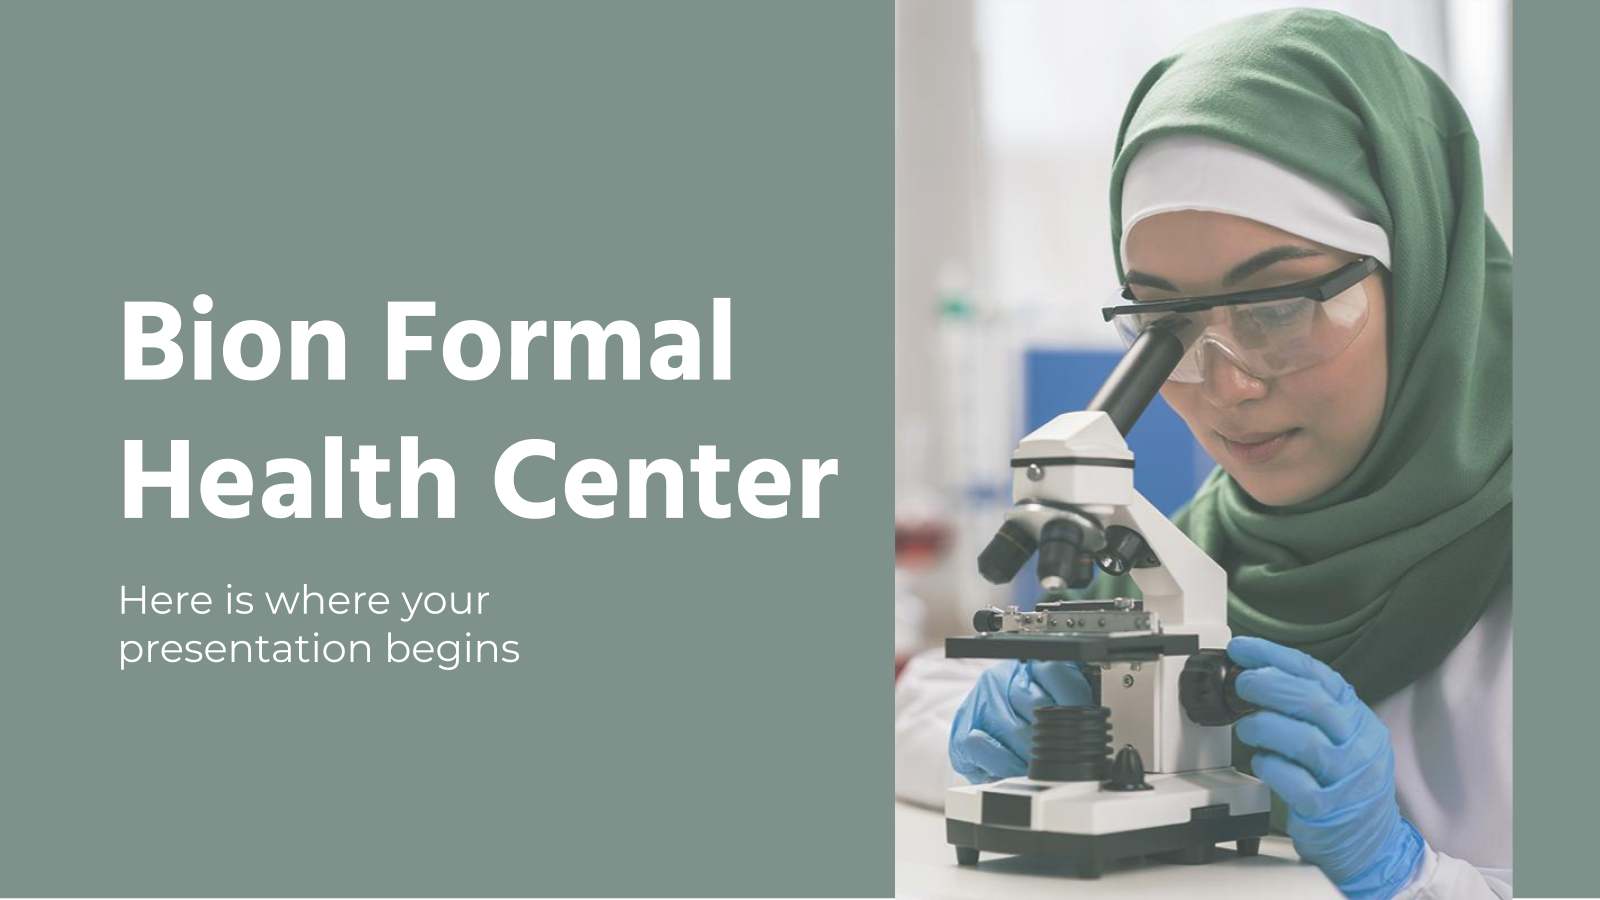 Bion Formal Health Center presentation template